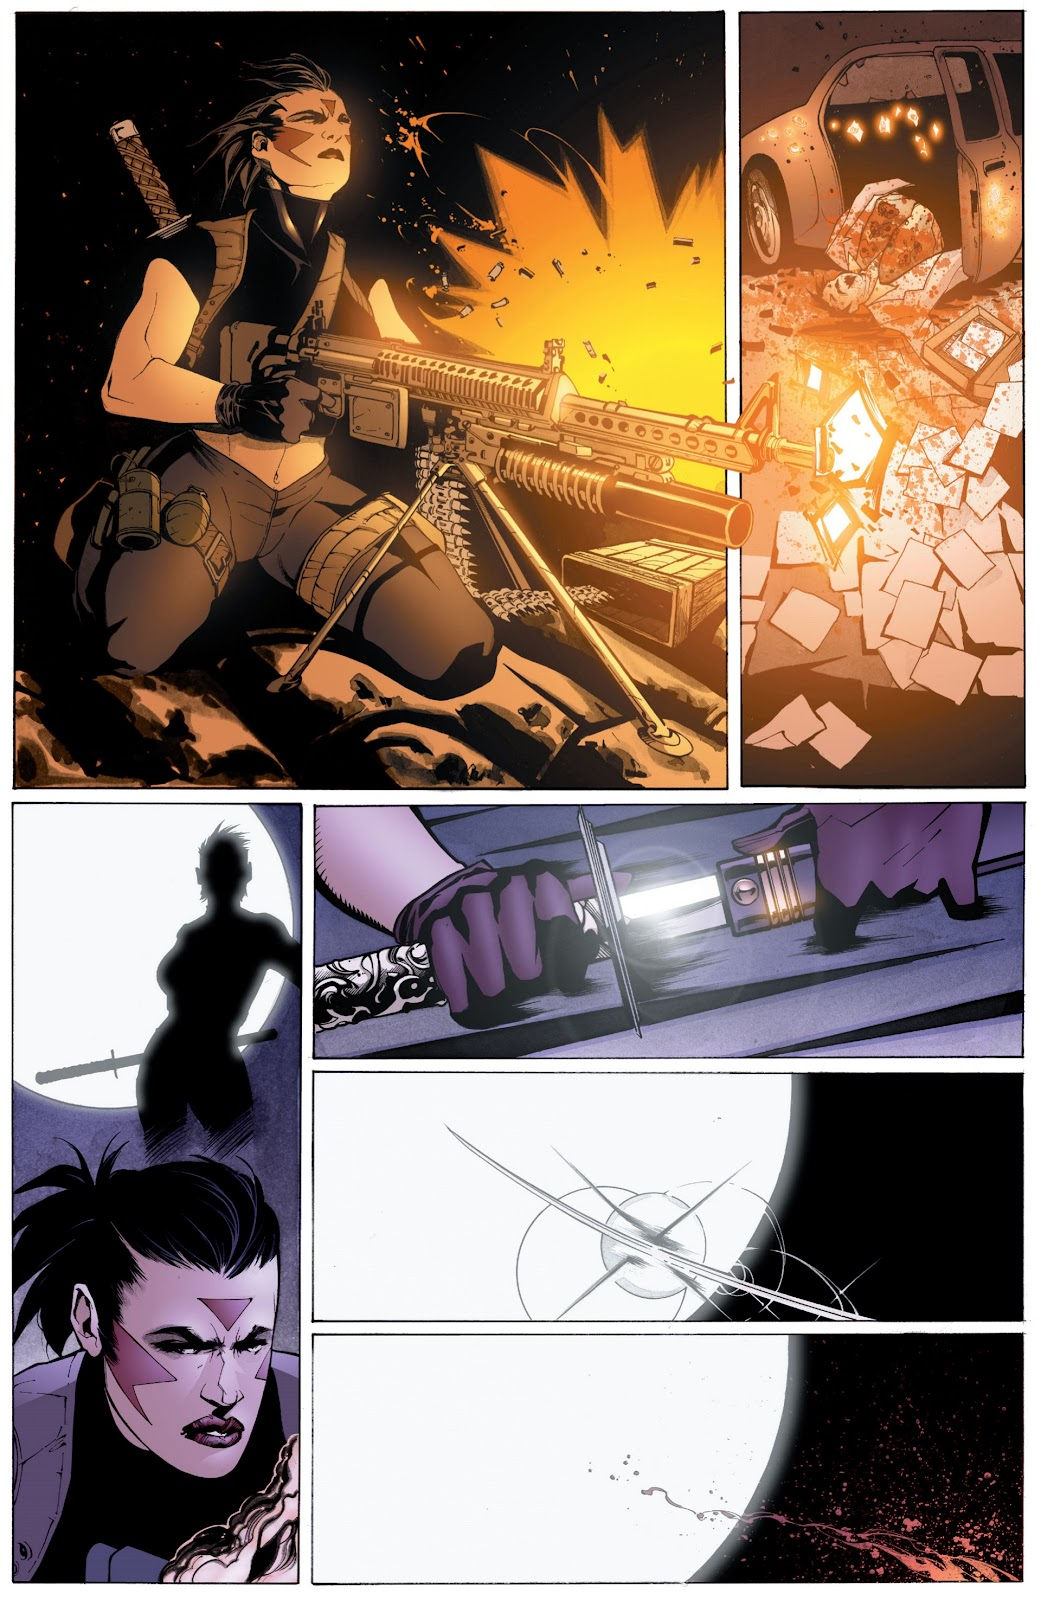 Wildcats Version 3.0 Issue #13 #13 - English 12